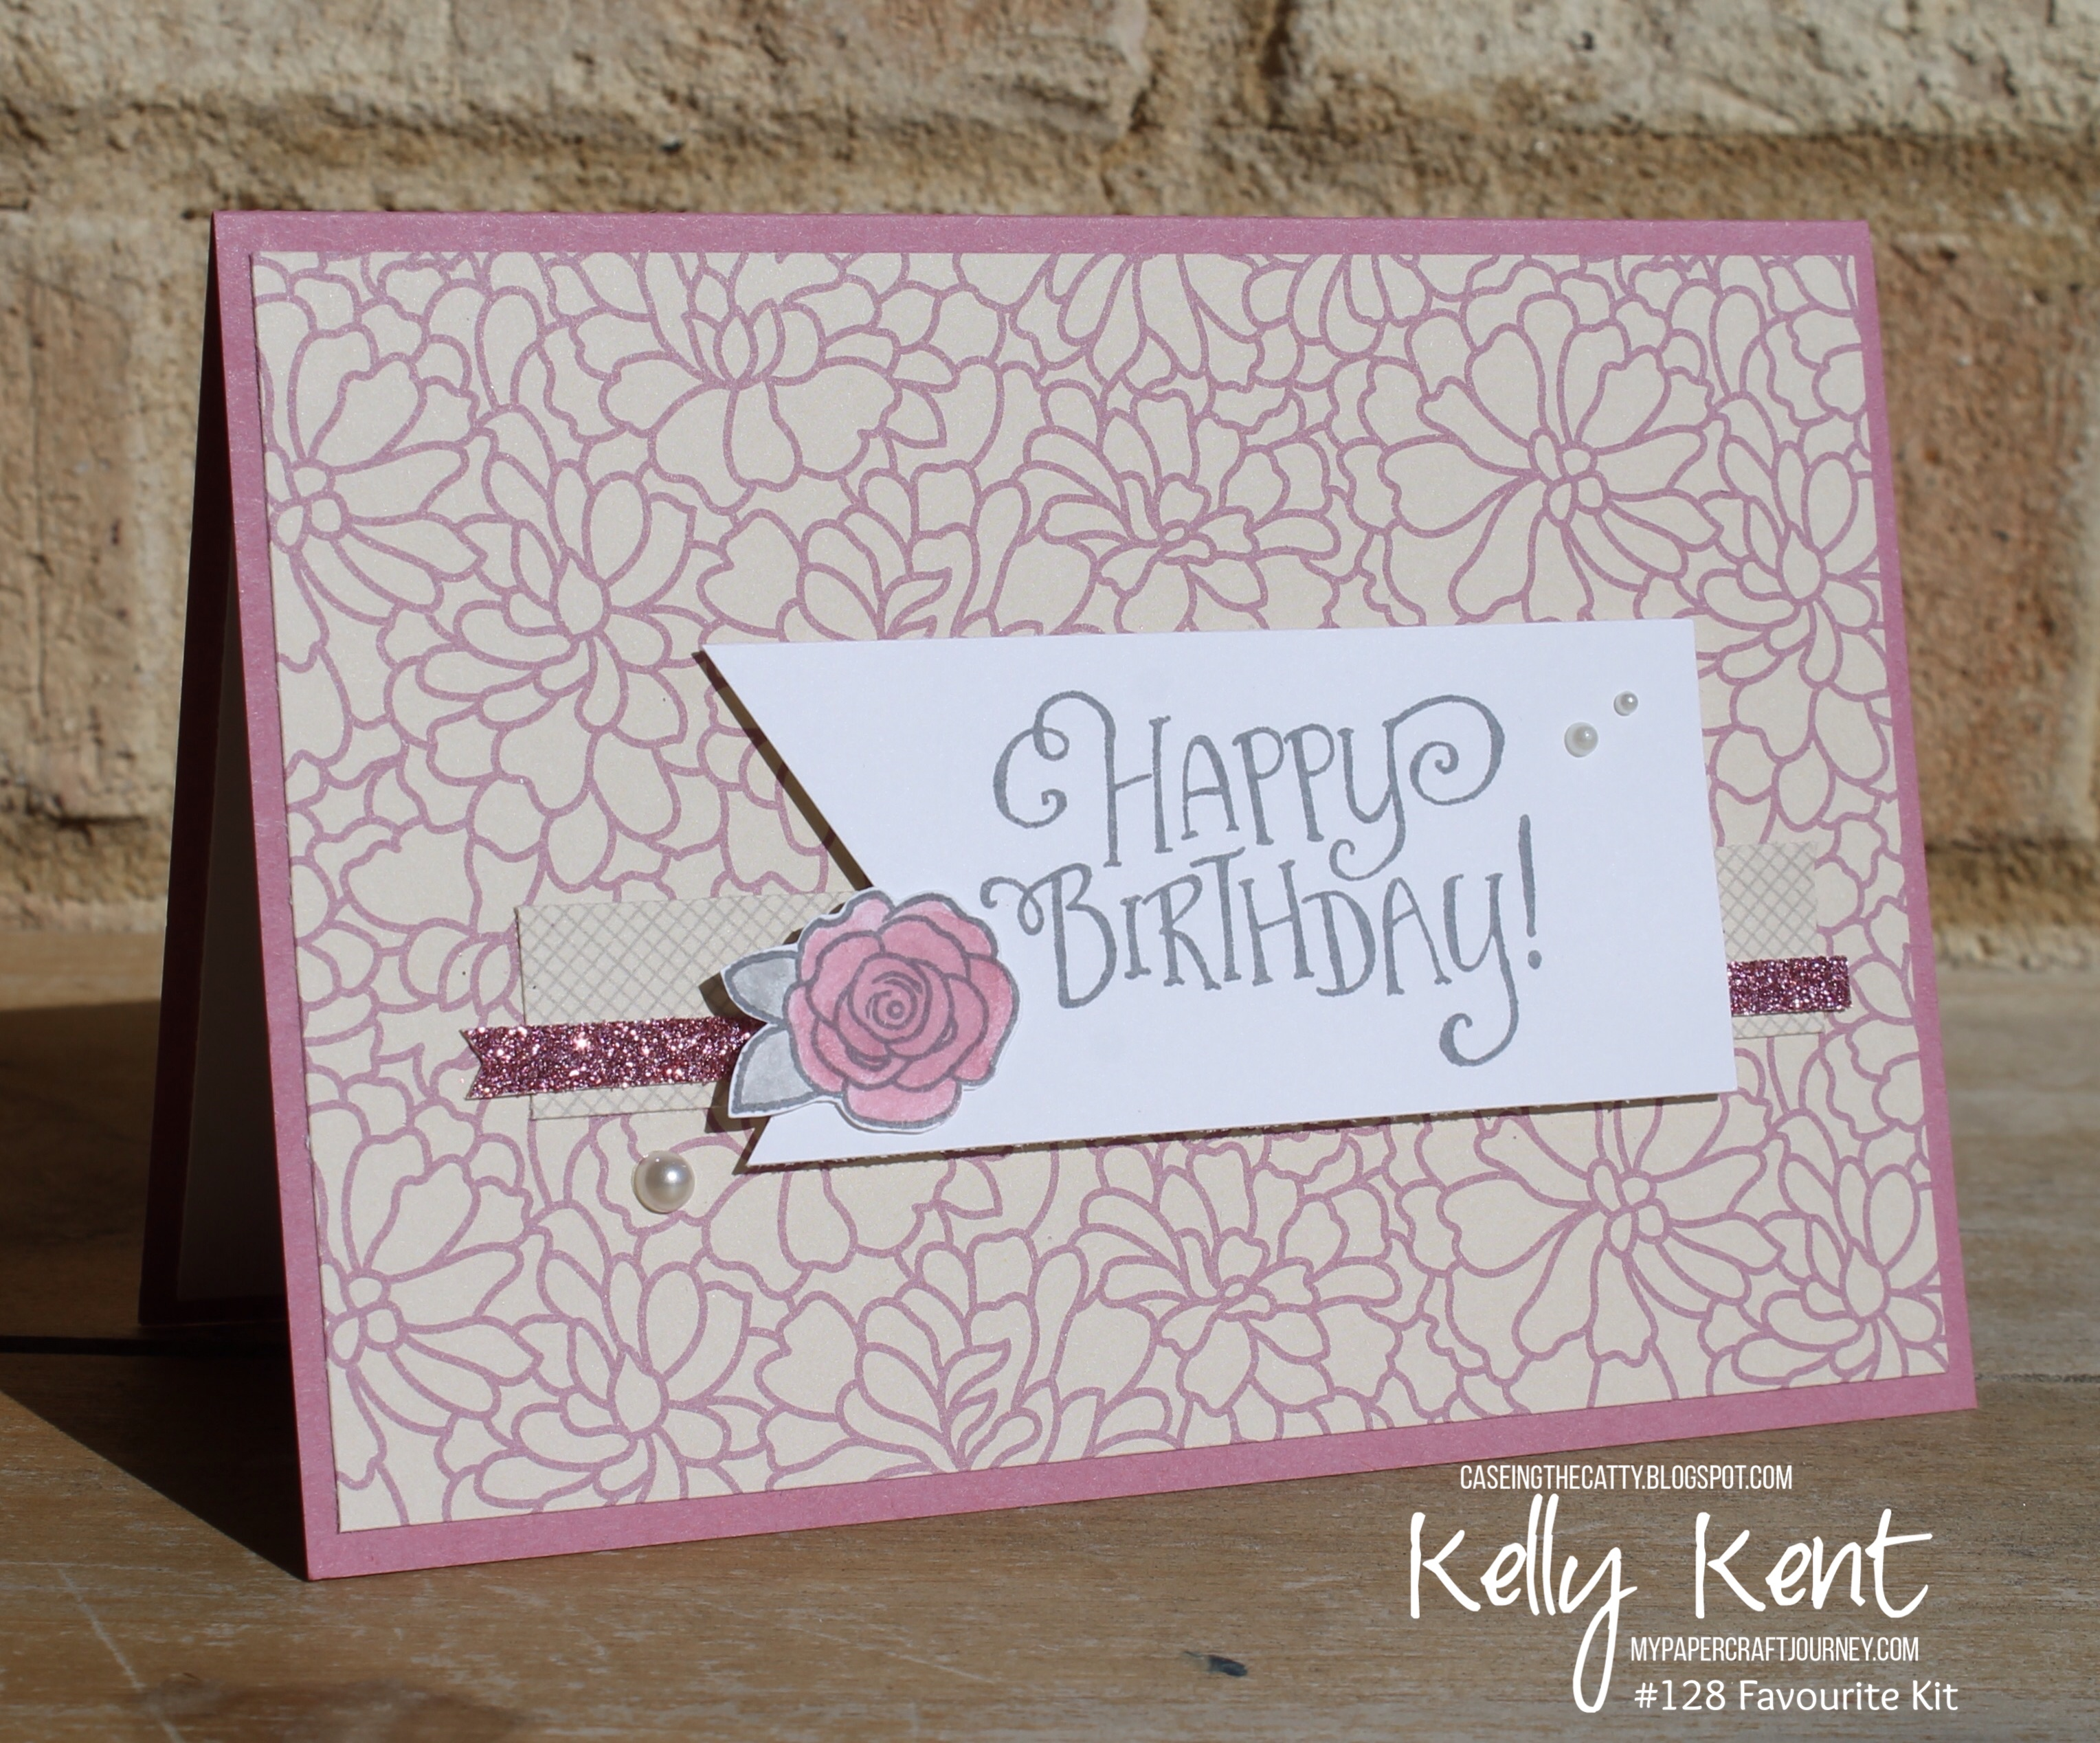 CASEing the Catty #128 Favourite Kit | kelly kent